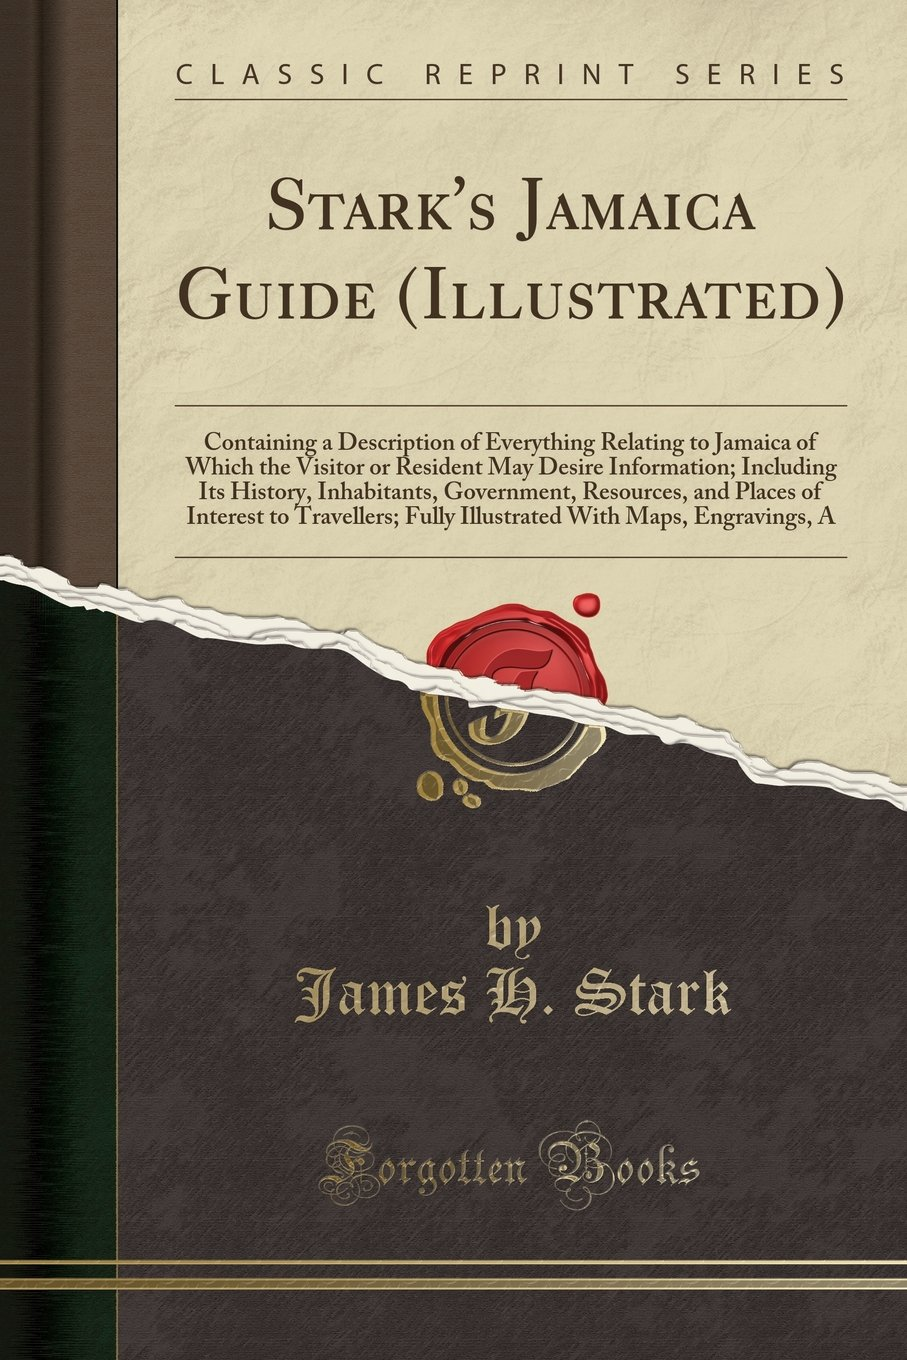 Stark's Jamaica Guide (Illustrated): Containing a Description of Everything Relating to Jamaica of Which the Visitor or Resident May Desire ... and Places of Interest to Travellers; Fully